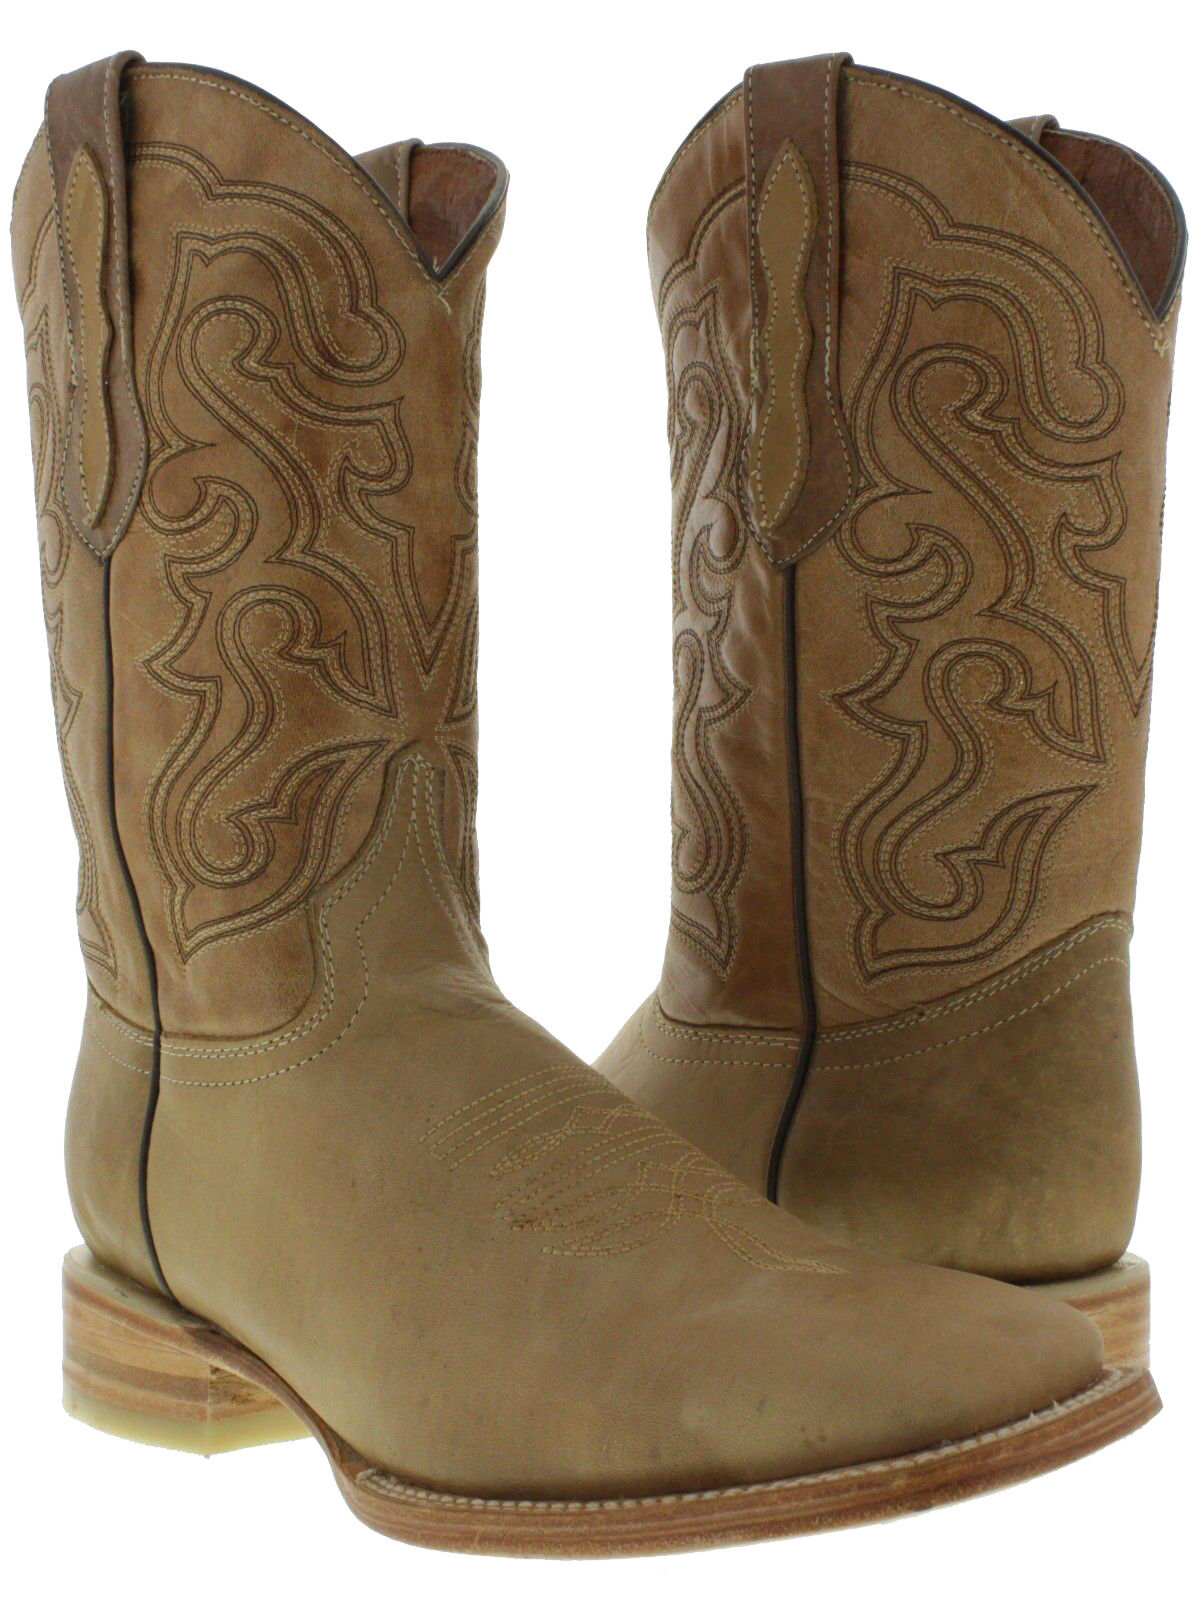 Mens Real Leather Sand Plain Classic Stitch Cowboy Boots Riding Square Toe